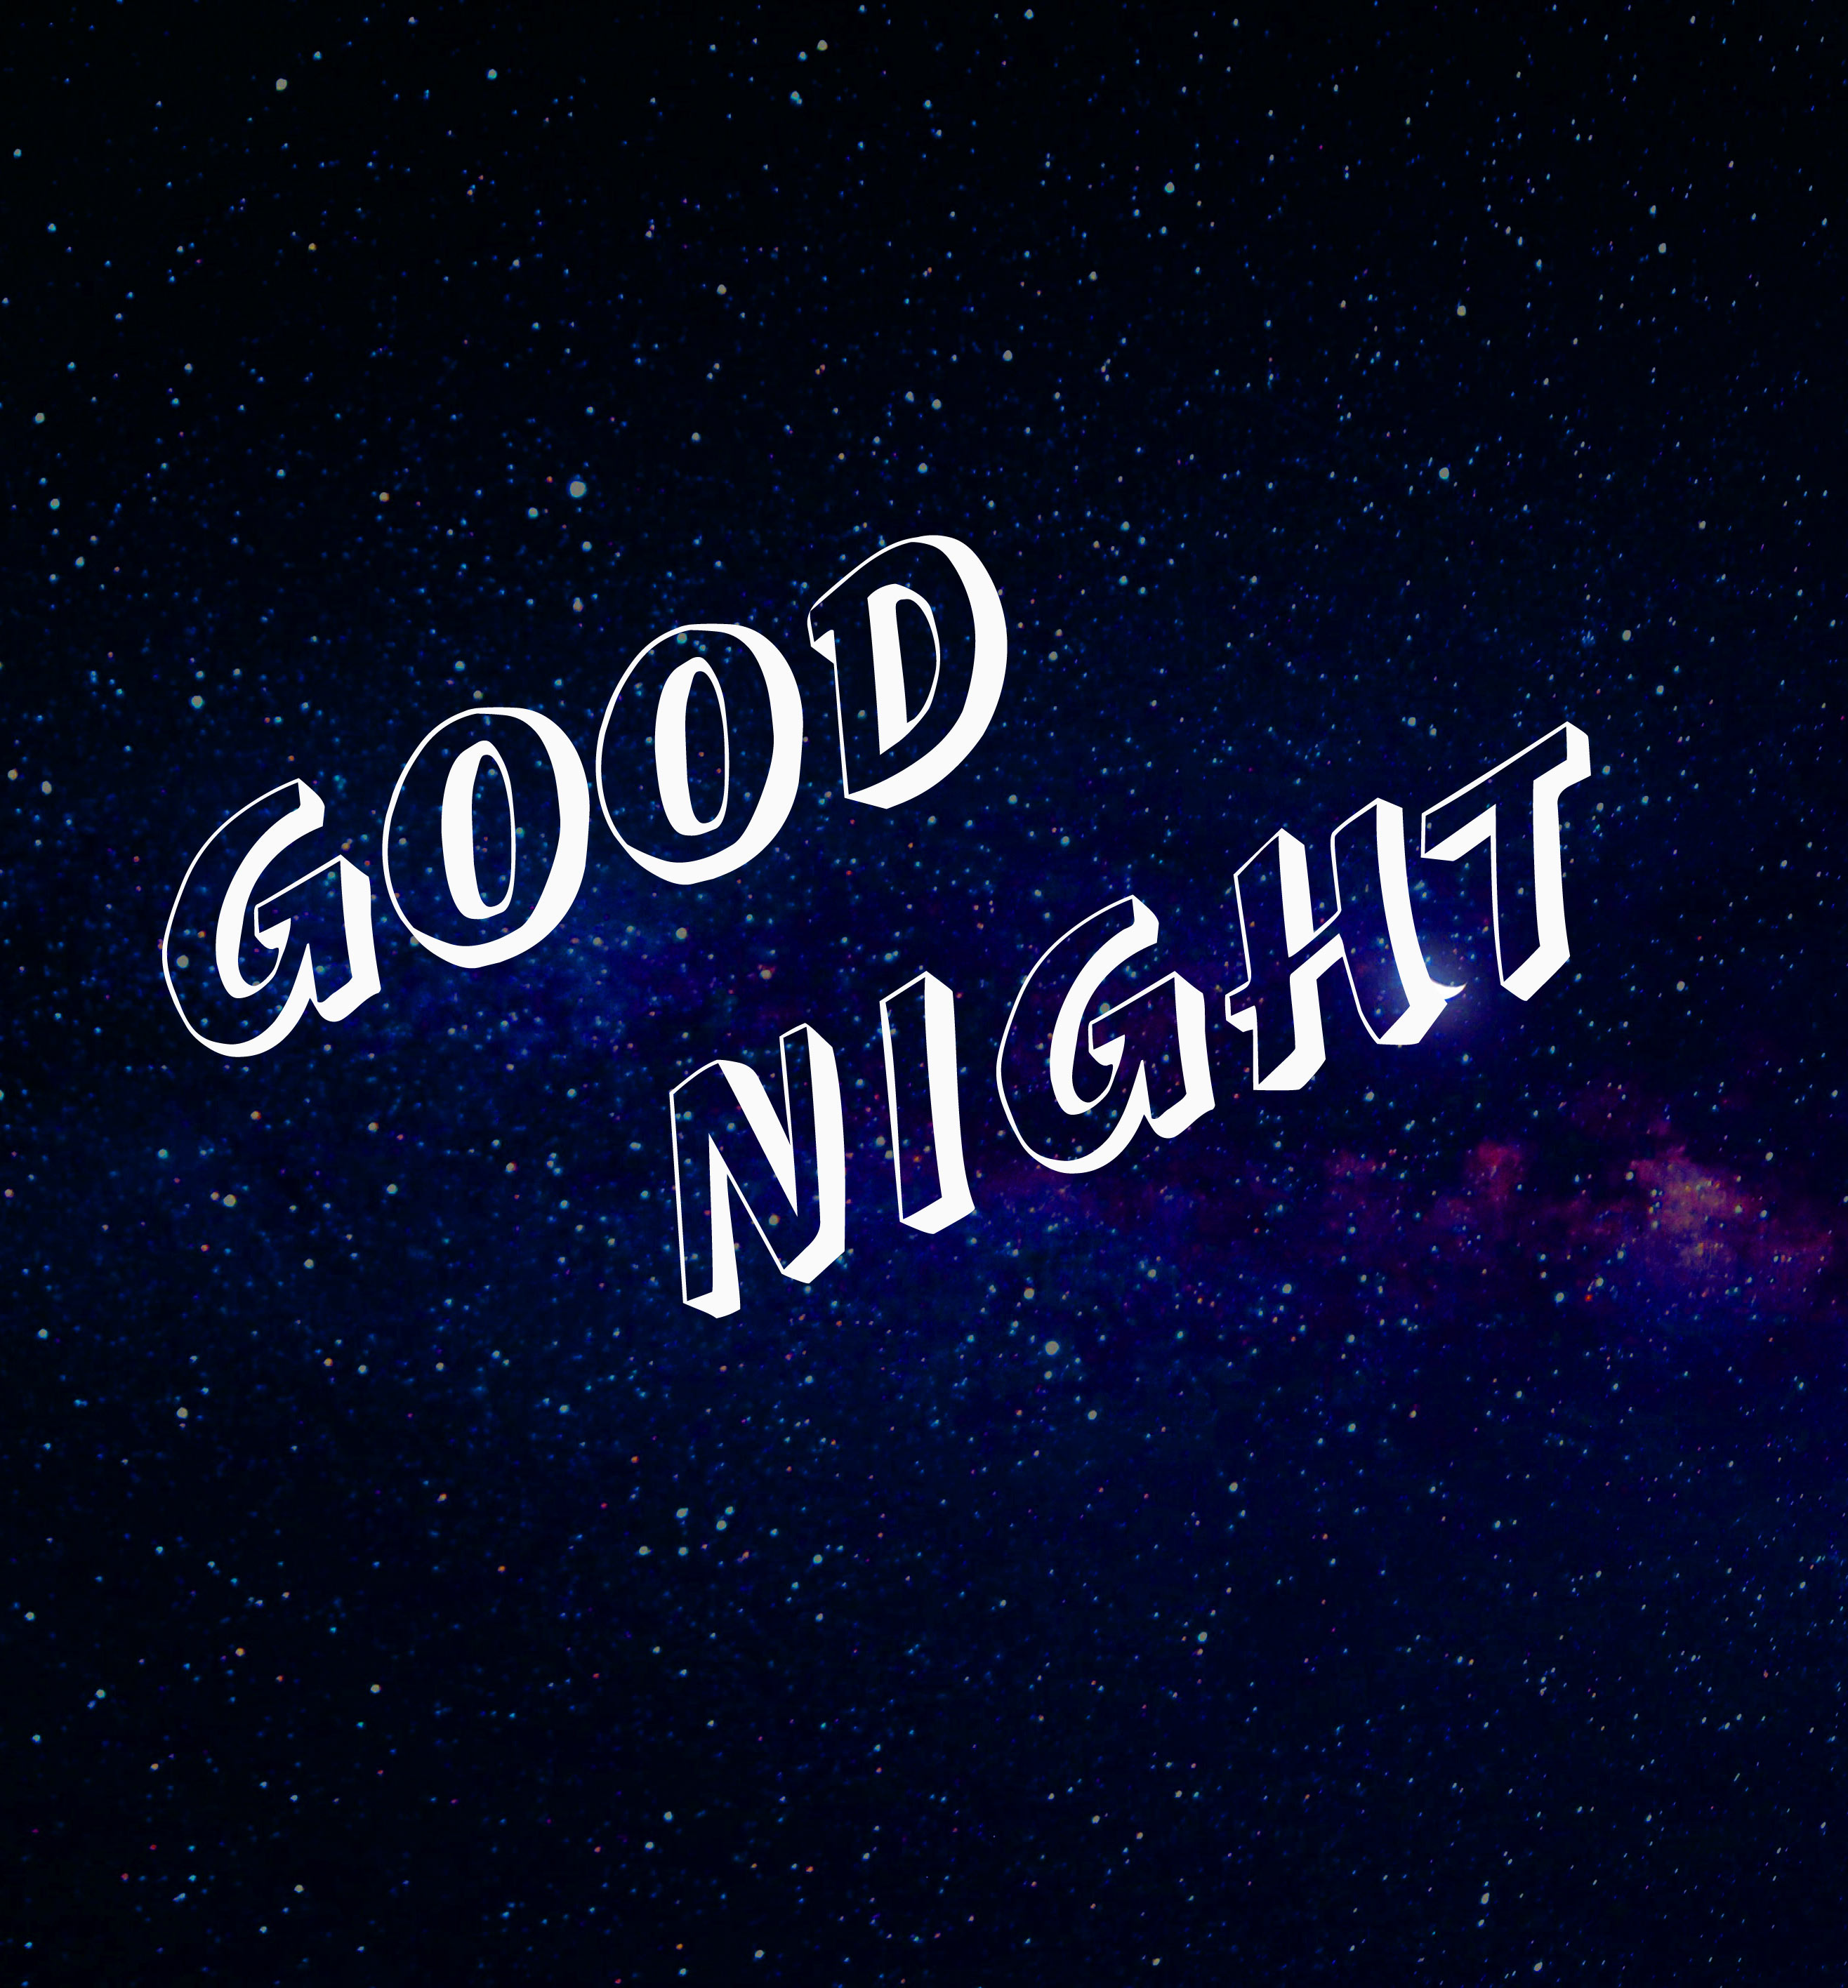 3D Good Night Images Pic Download